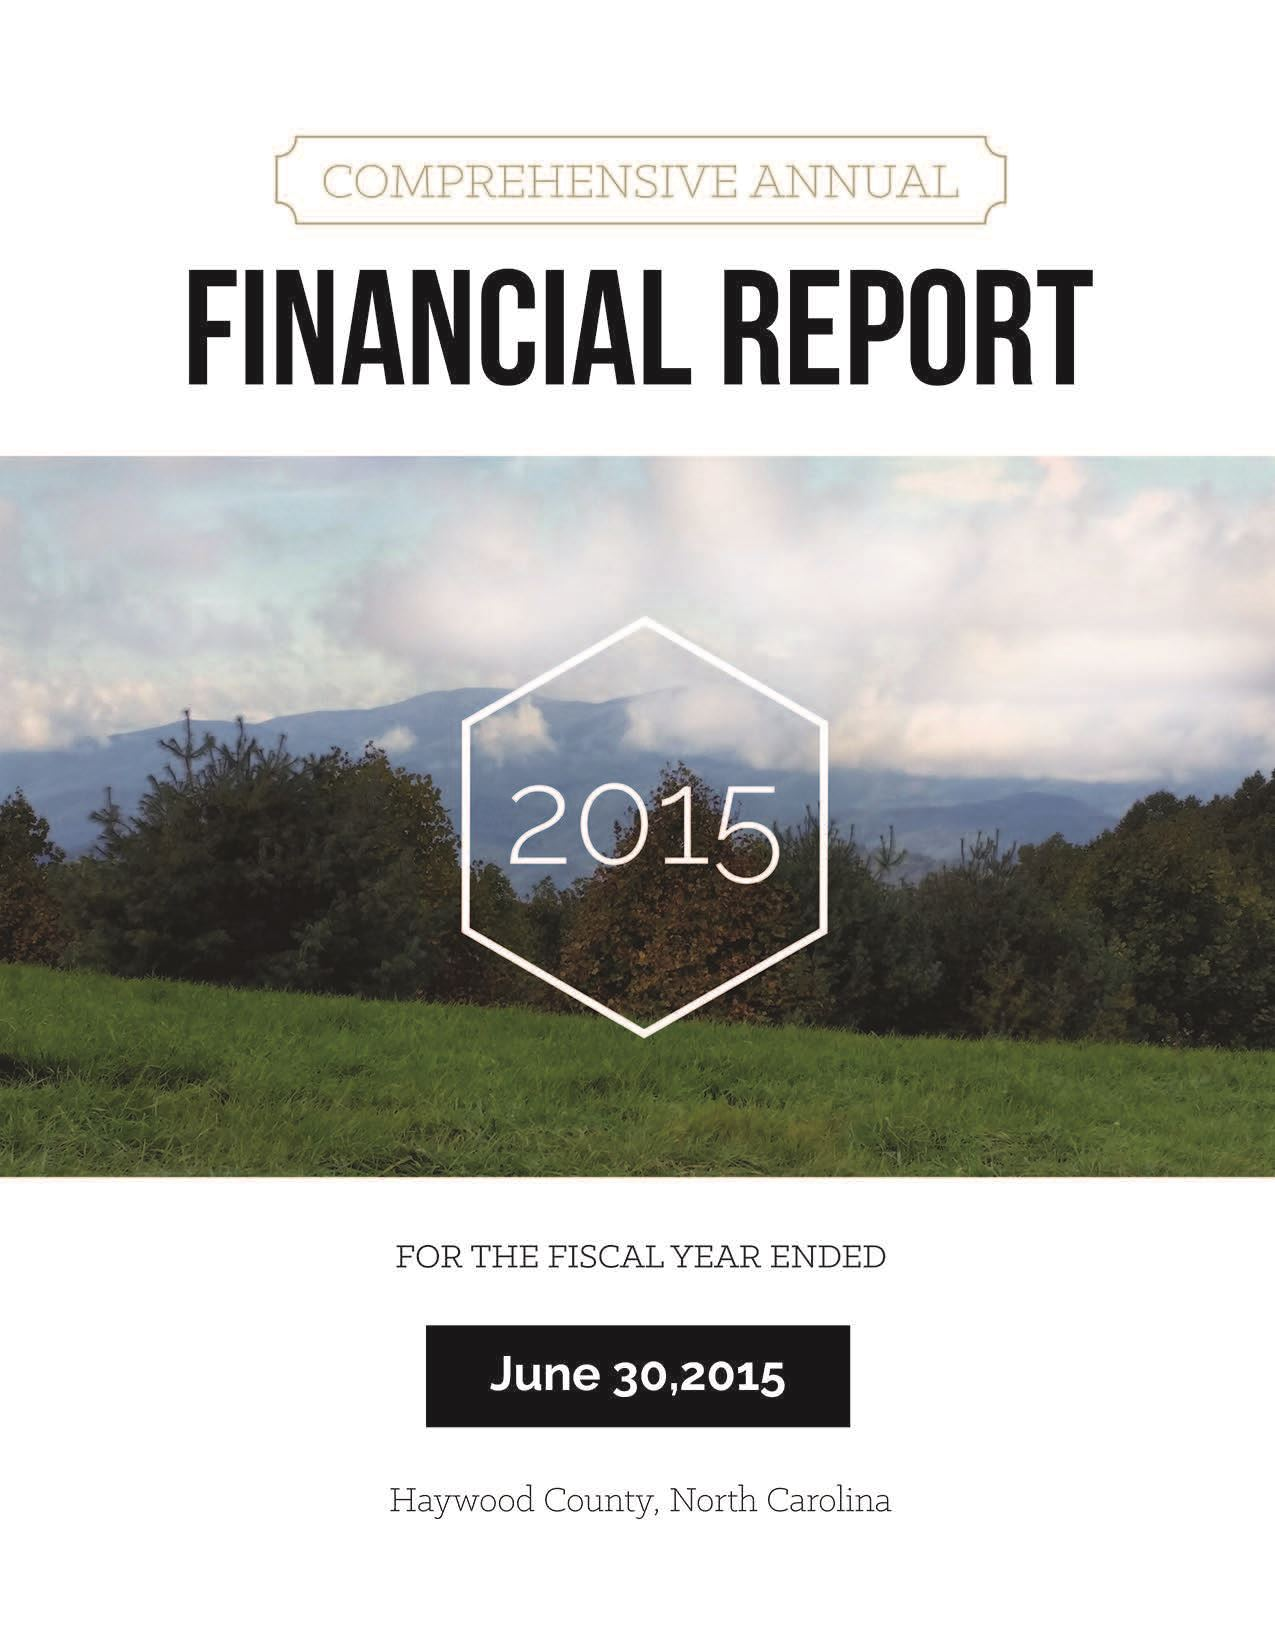 Comprehensive Annual Financial Report 2015 Cover Opens in new window